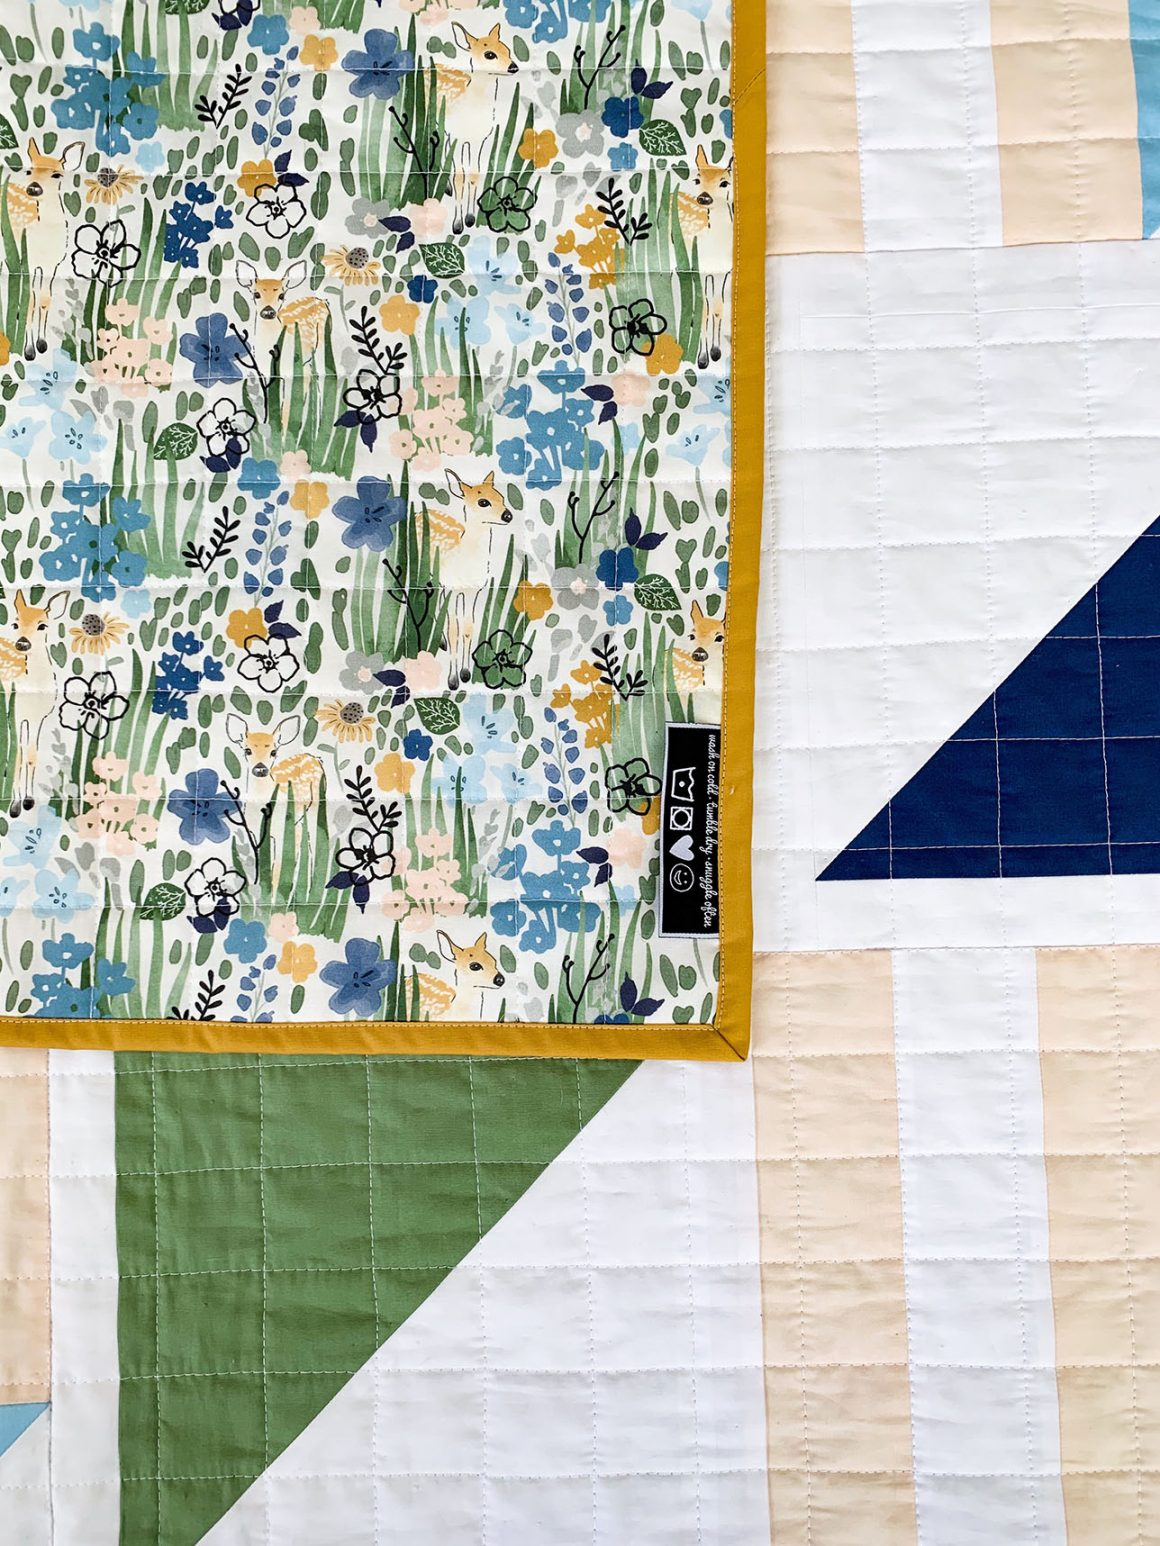 Half Pint Quilt - made by Tera Nicolo-Smith